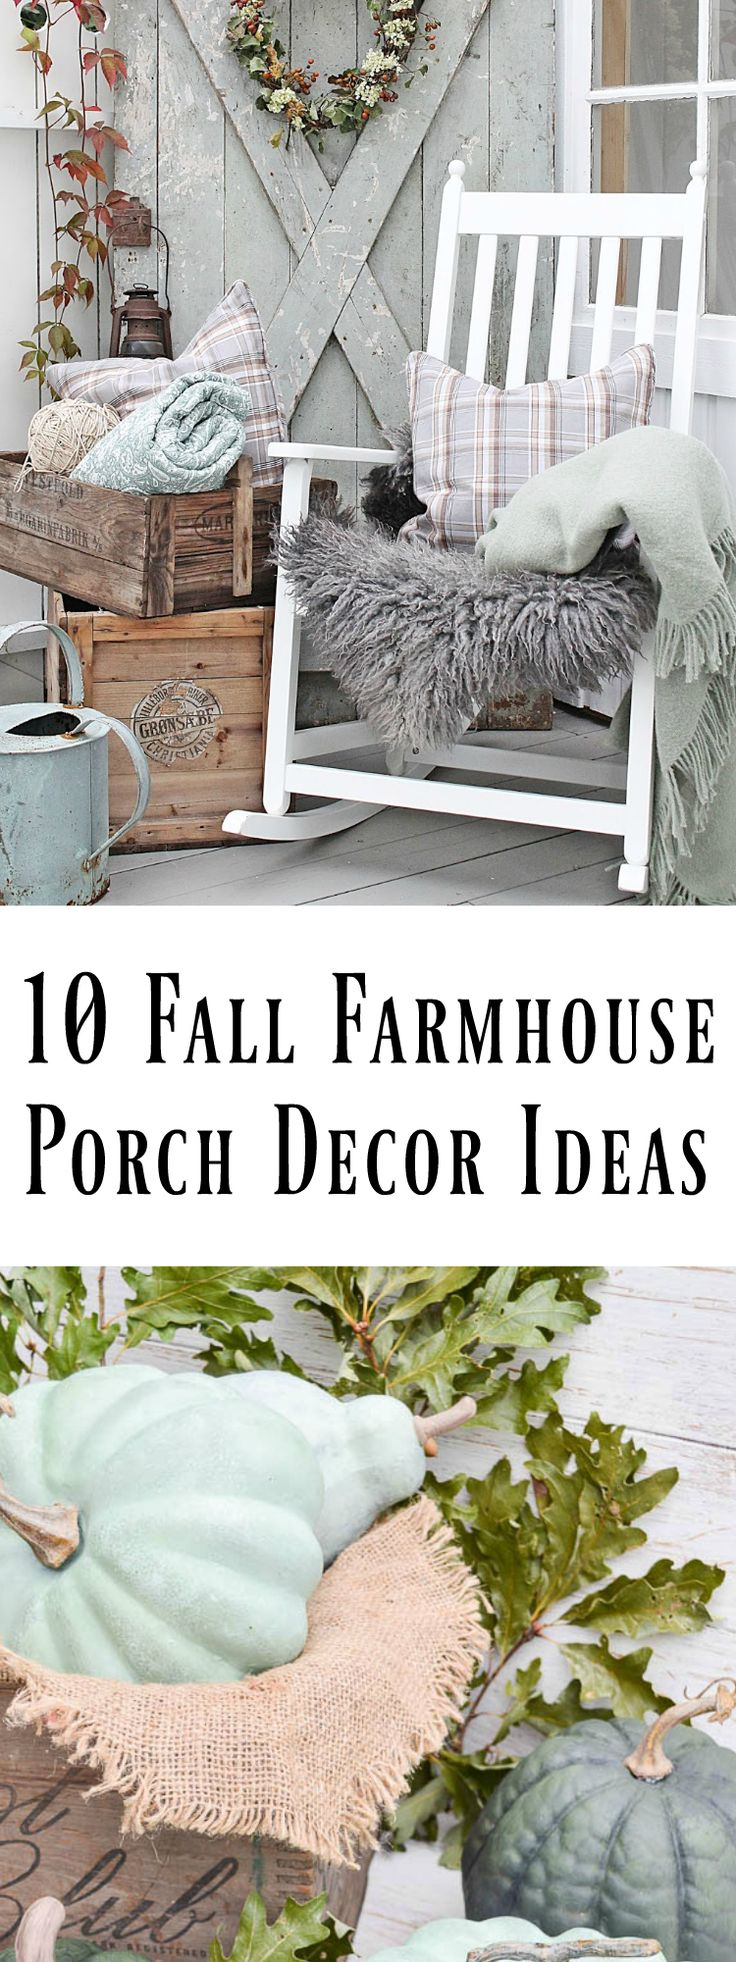 Love farmhouse style? Come sit for a spell and be inspired by these 10 fall farmhouse porch decor ideas. via @dandelionpatina                                                                                                                                                                                 More